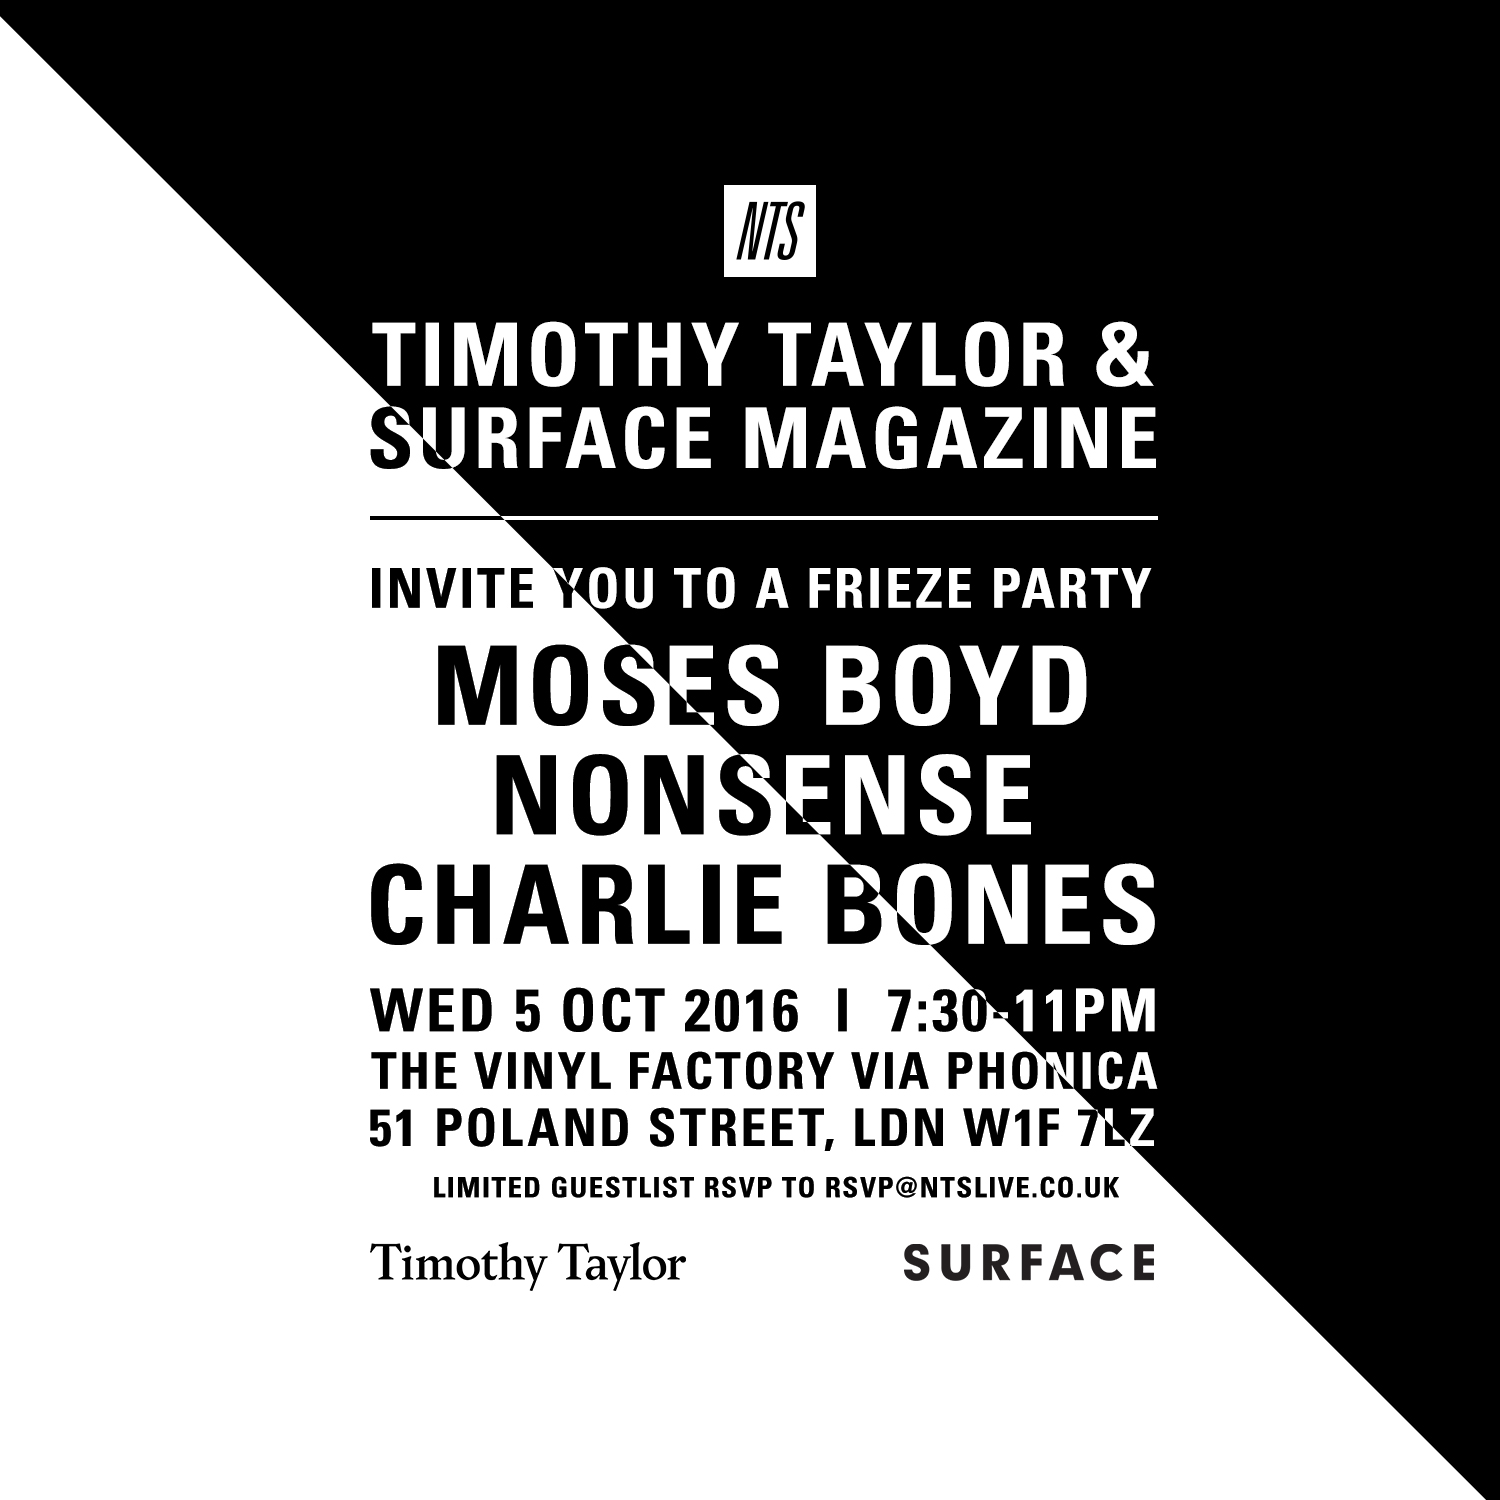 Surface-Timothy-Taylor-Frieze-MAGAZINE-NTS-Artwork (1).jpg